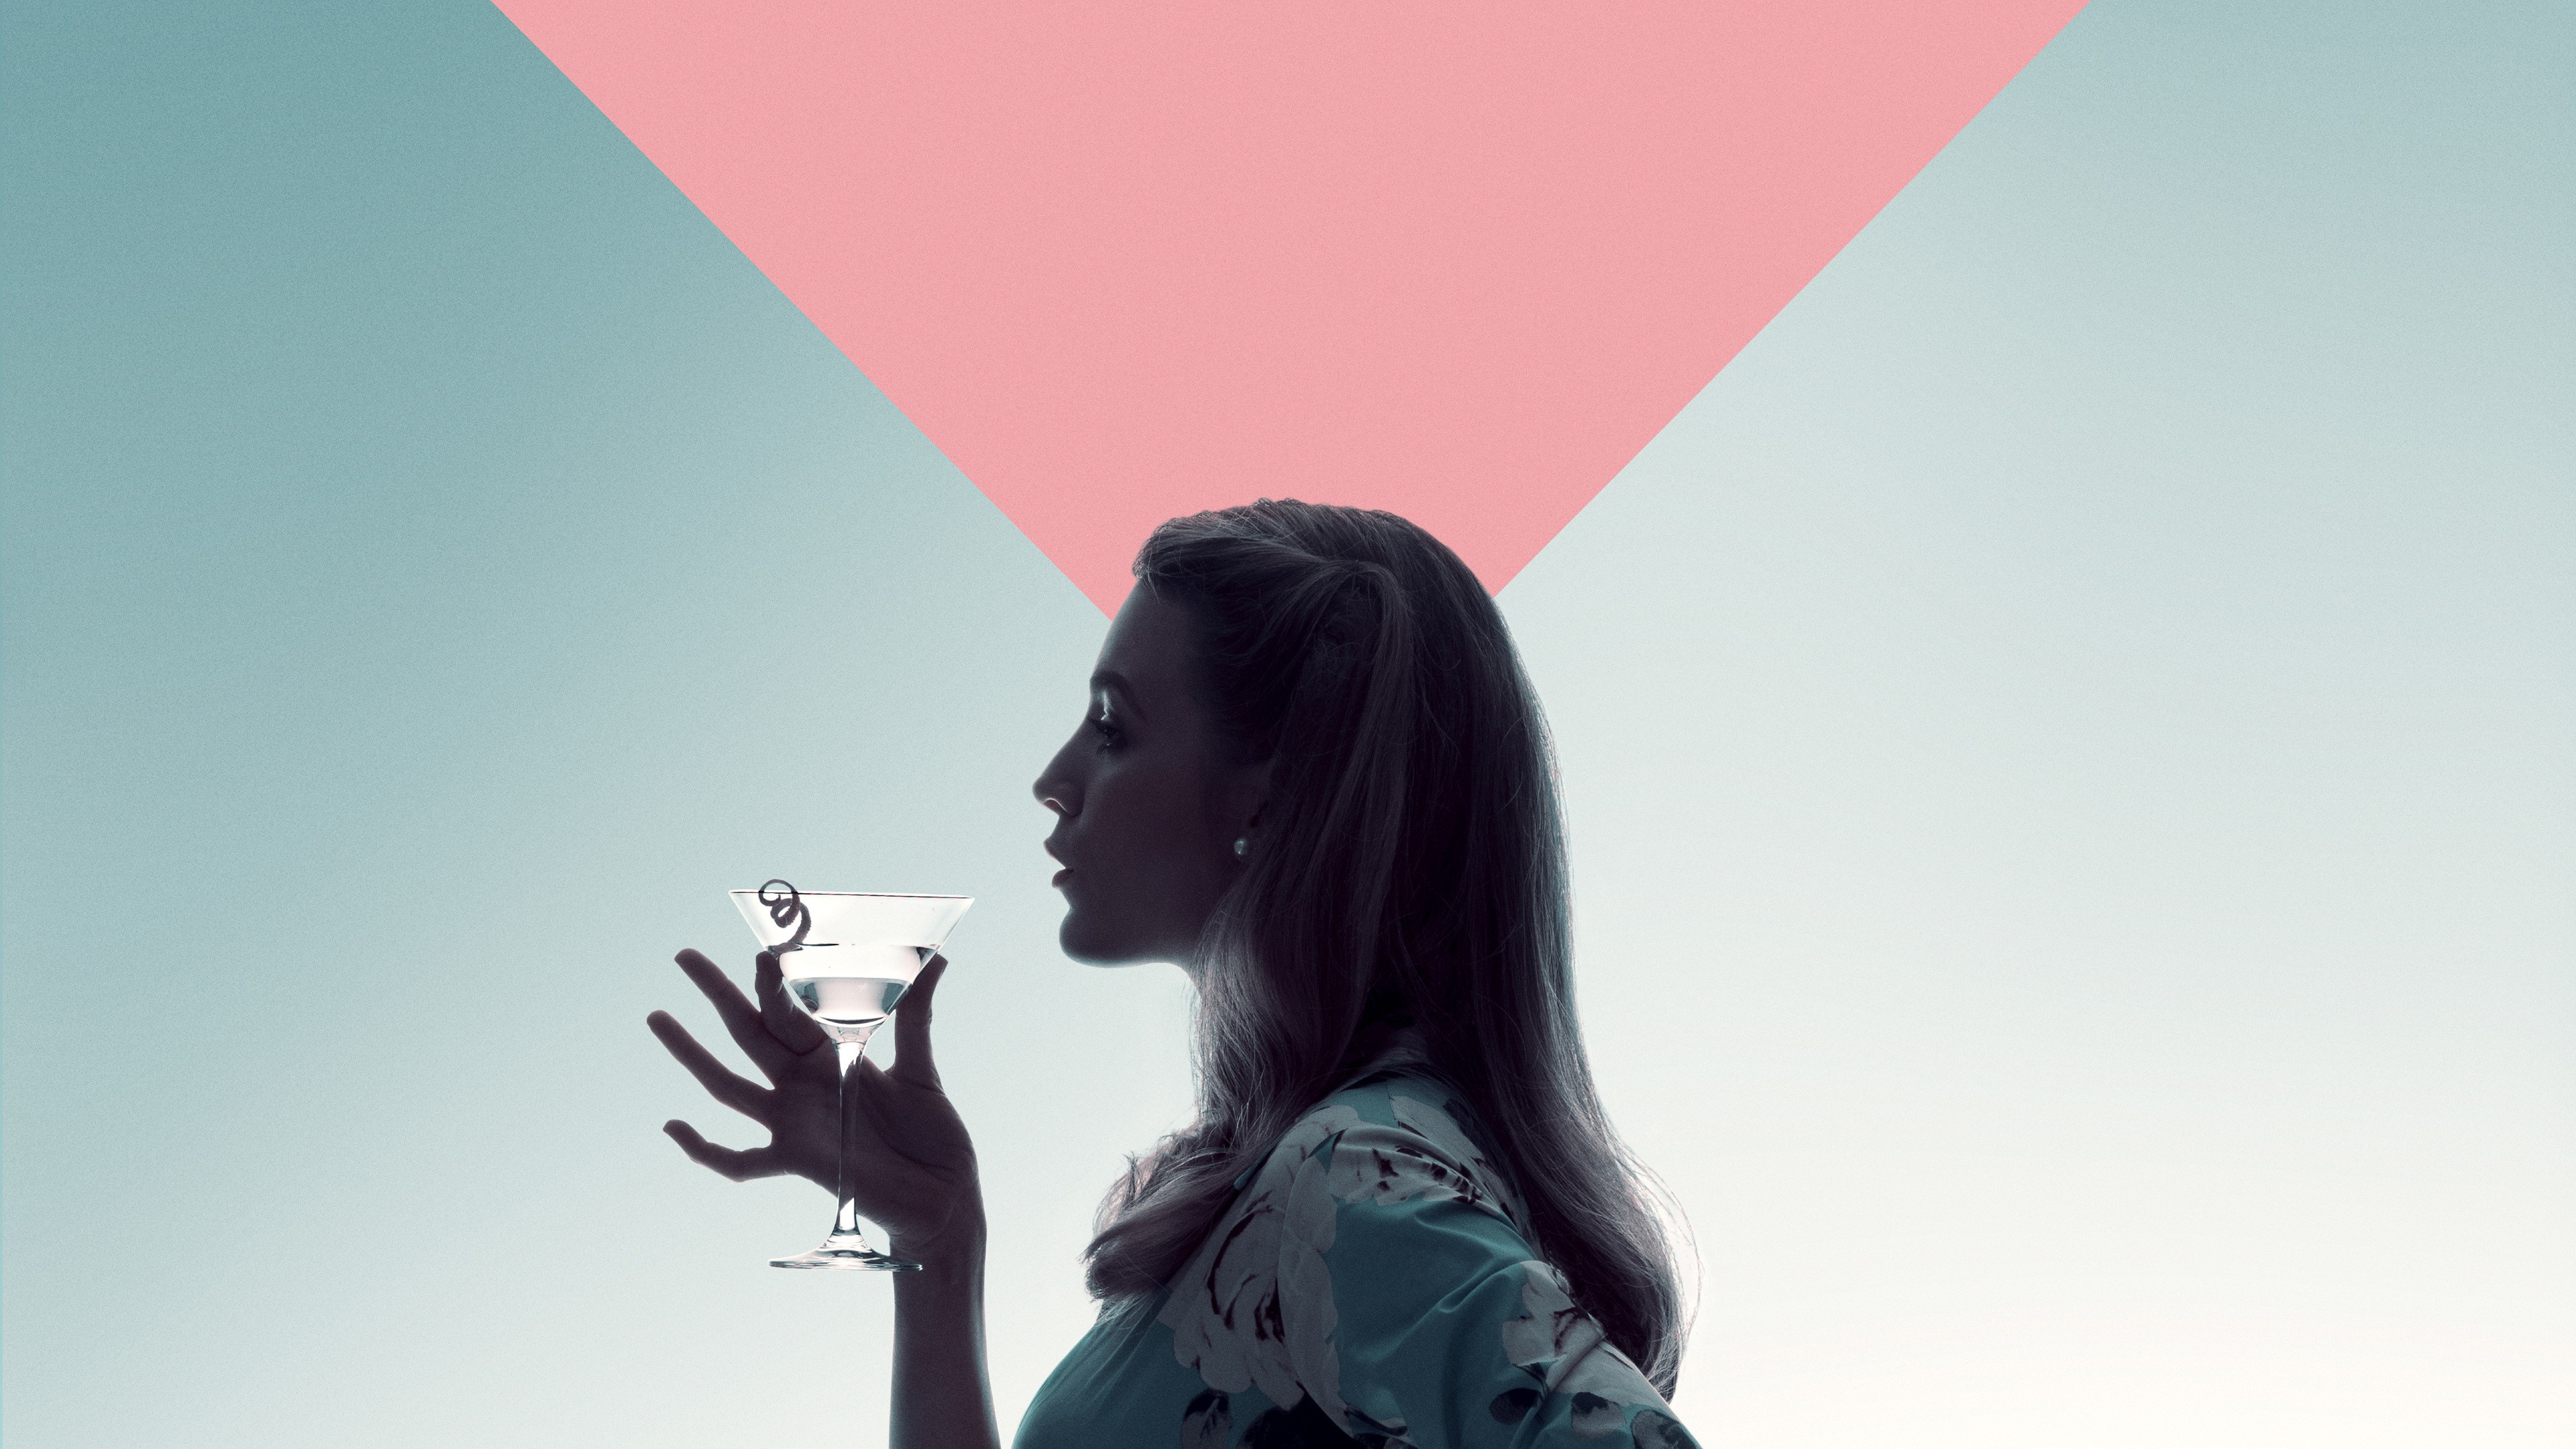 2560x1440 Wallpaper Girl Wallpaper A Simple Favor Blake Lively 4k Movies 19781